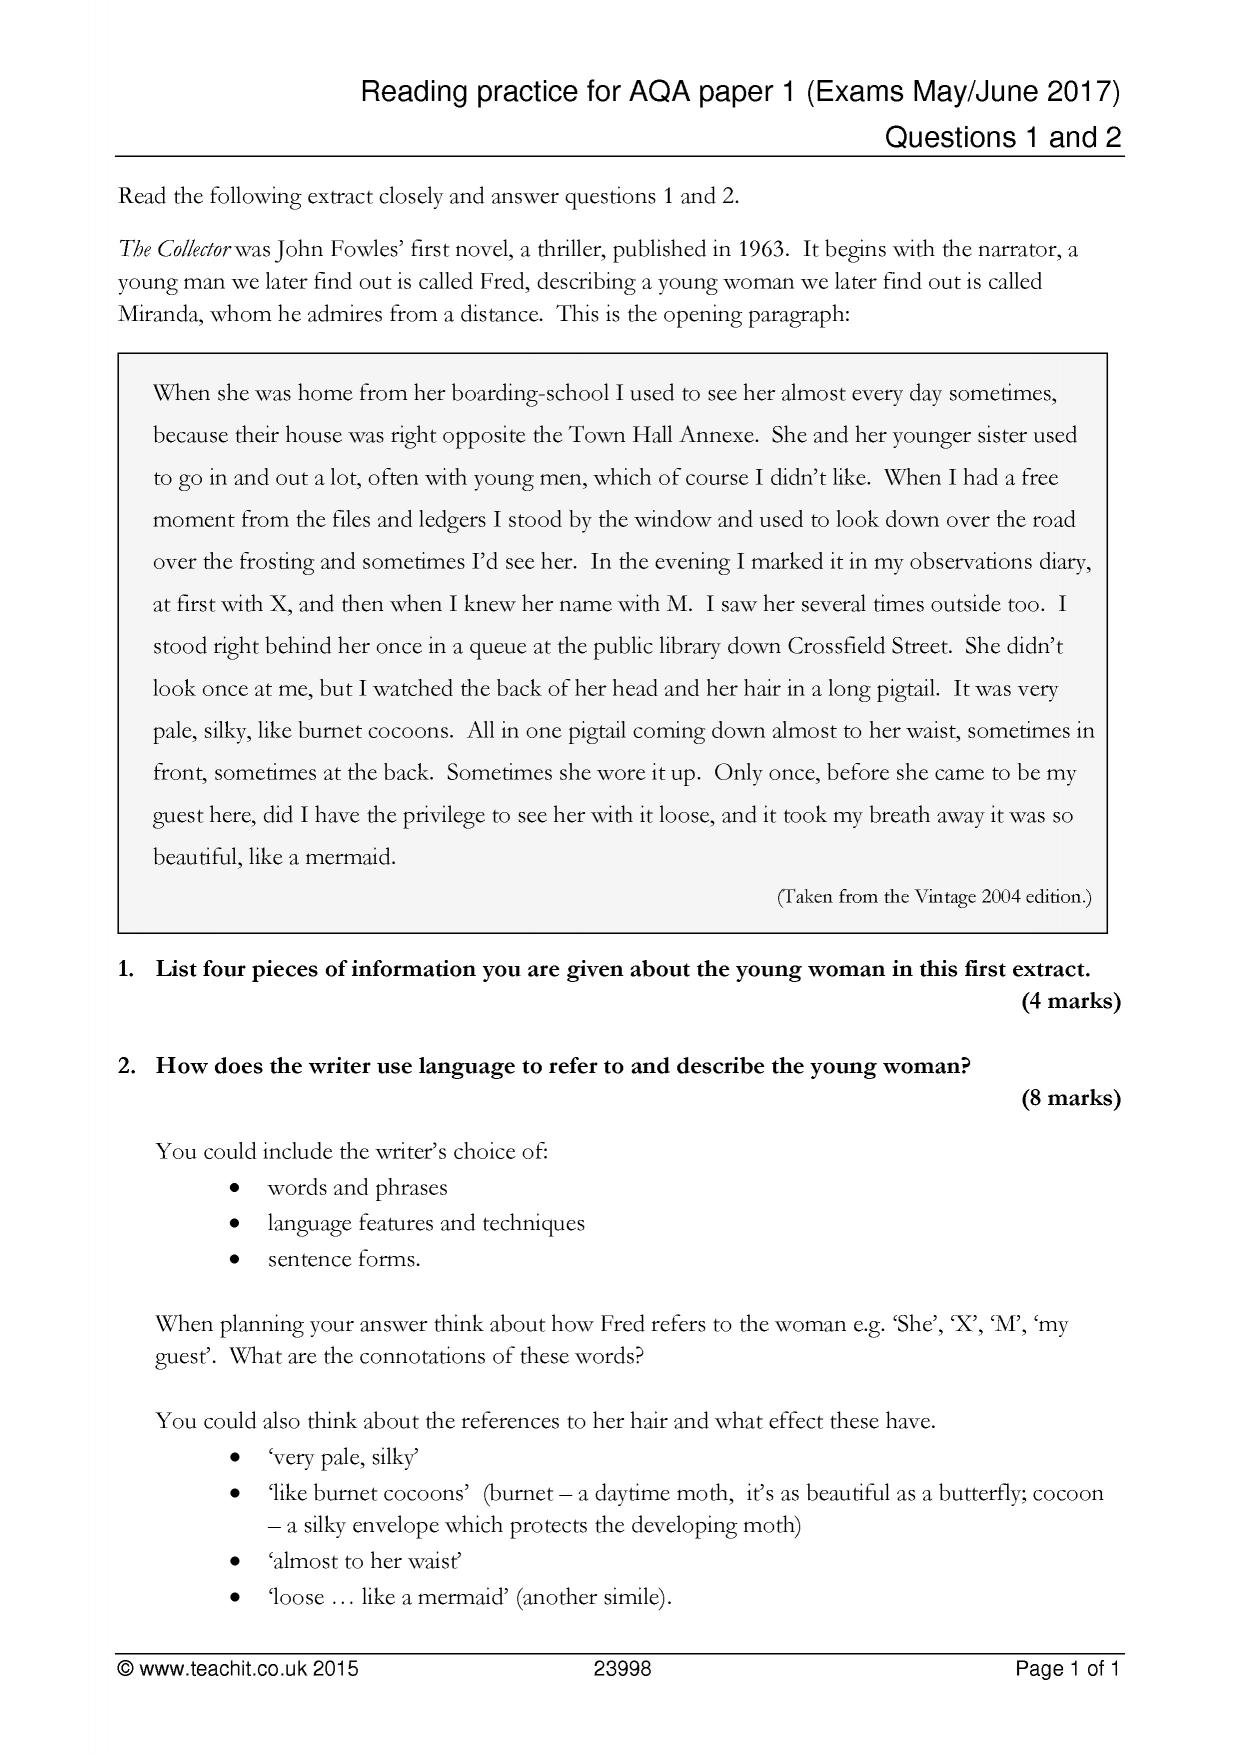 practice essay questions for english English language essay questions a selection of free english language essay questions which have been made available to help aid you in creating your own english language essay question.